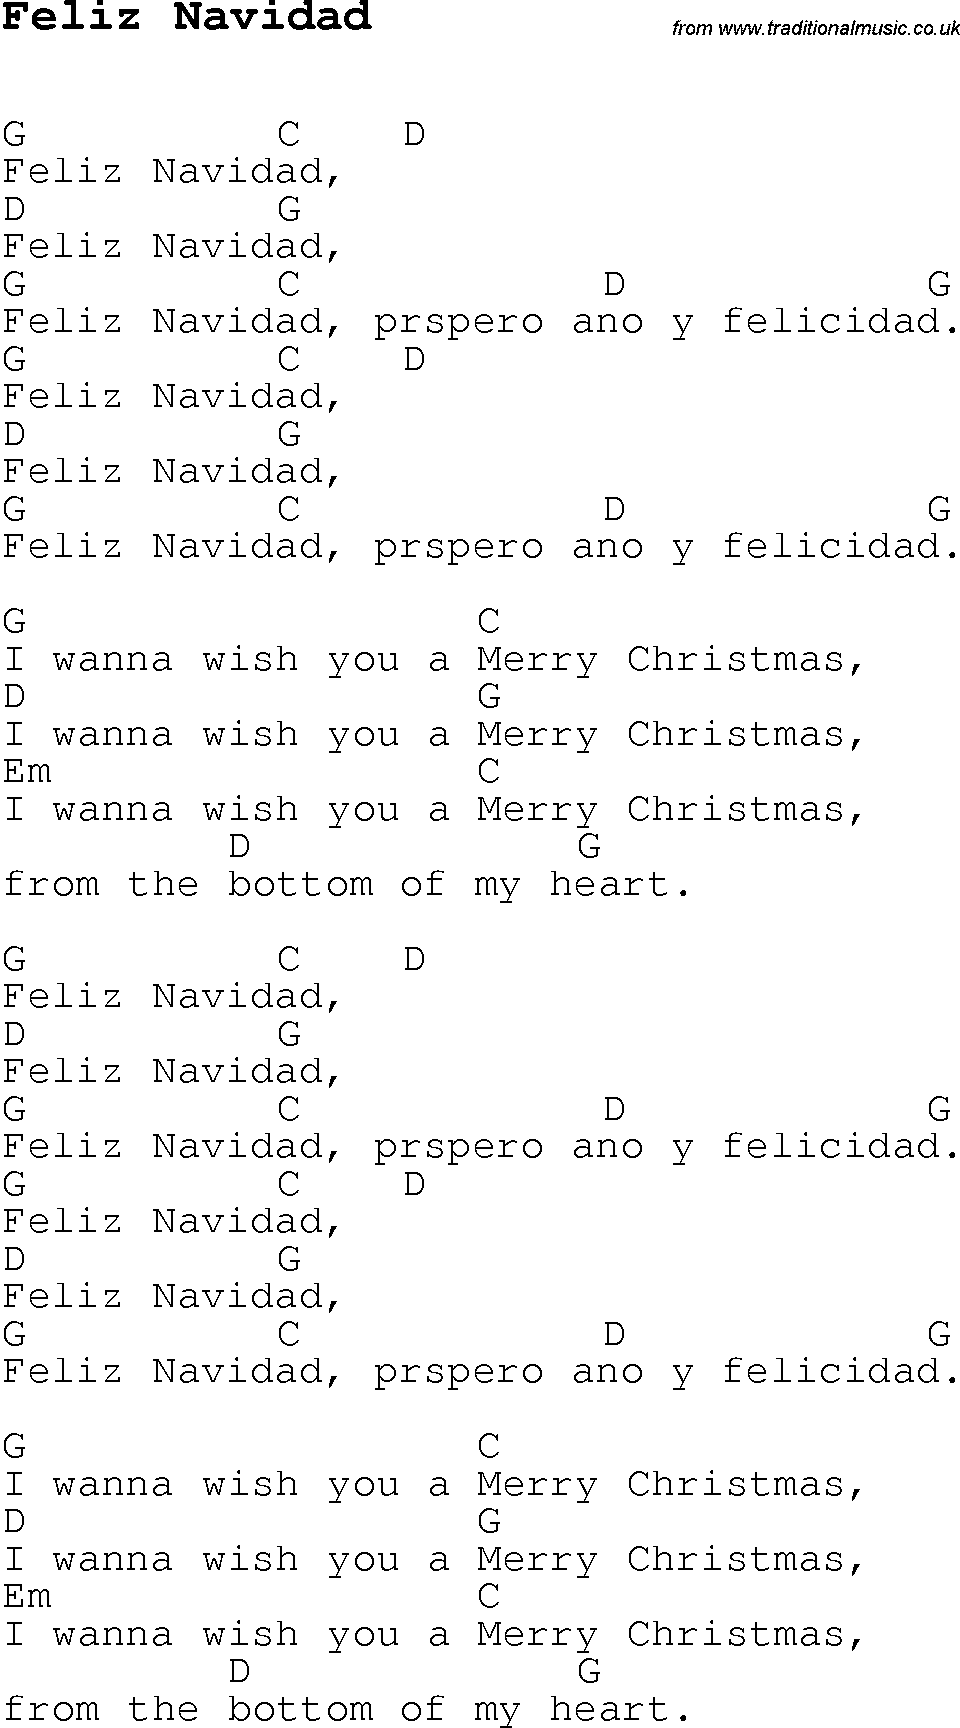 Christmas songs and carols lyrics with chords for guitar banjo christmas songs and carols lyrics with chords for guitar banjo for feliz navidad hexwebz Gallery